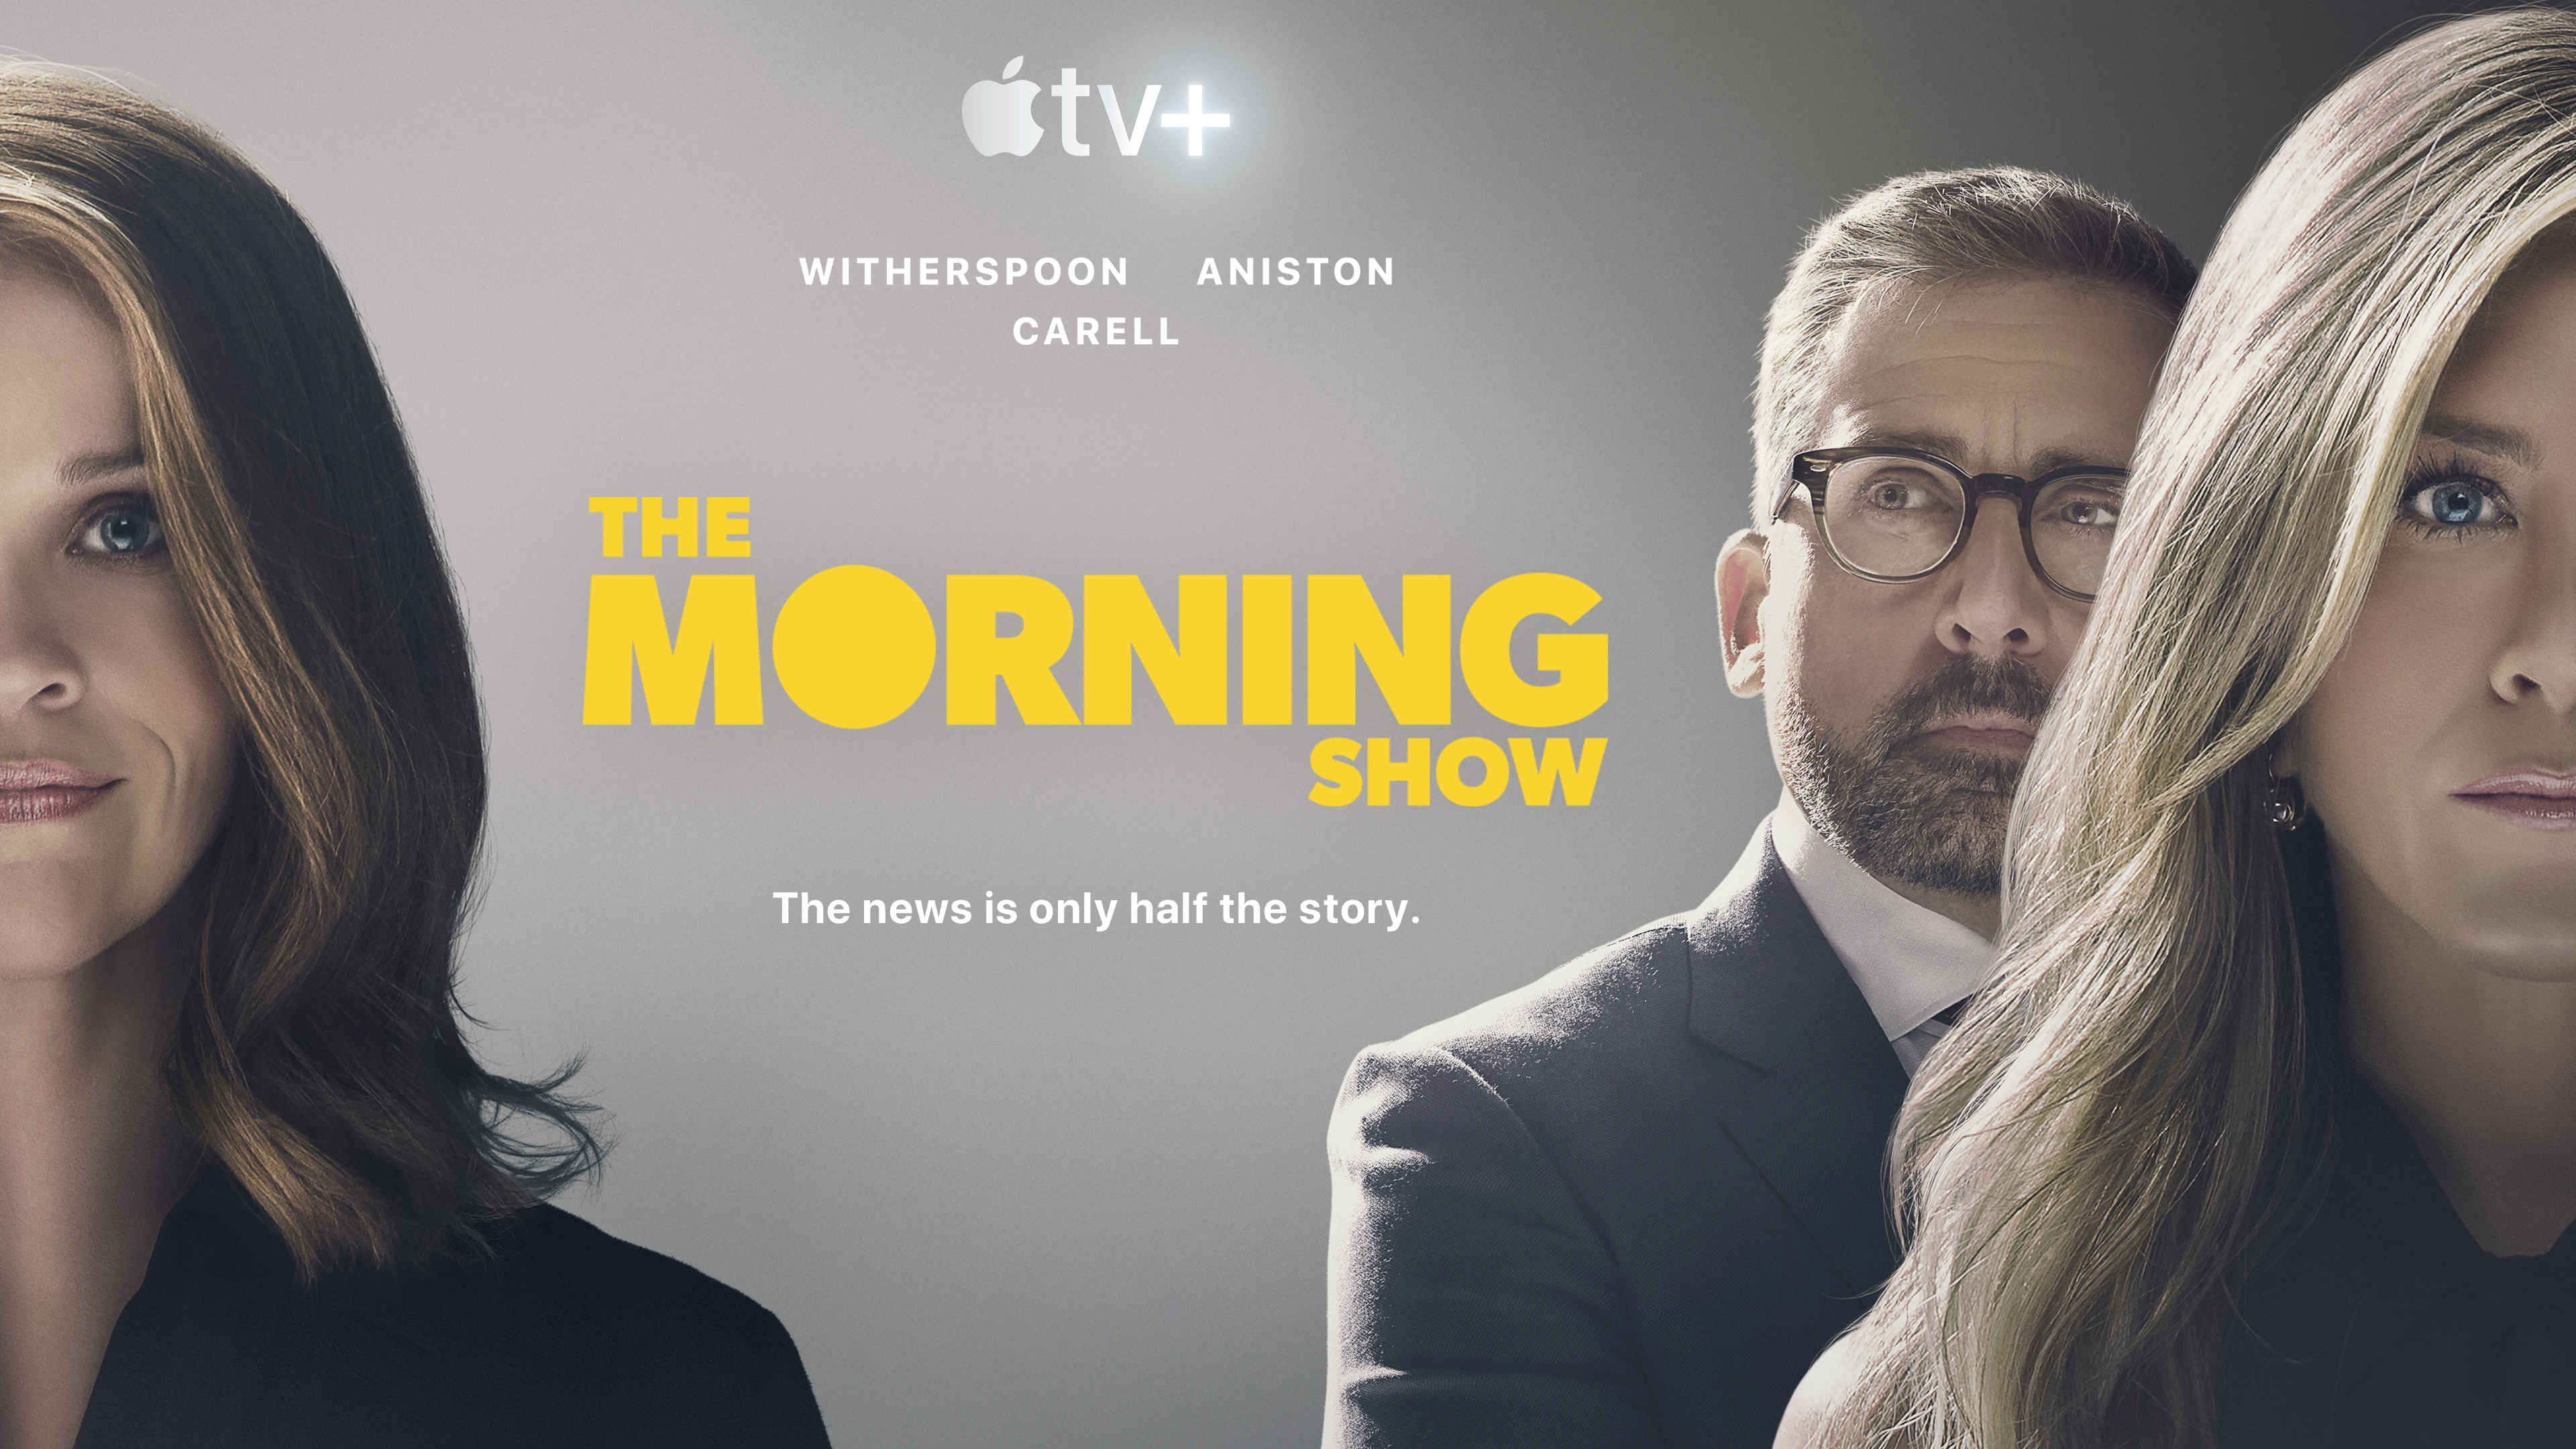 'The Morning Show' Season 2 Release Date, Cast, Trailer and Plot